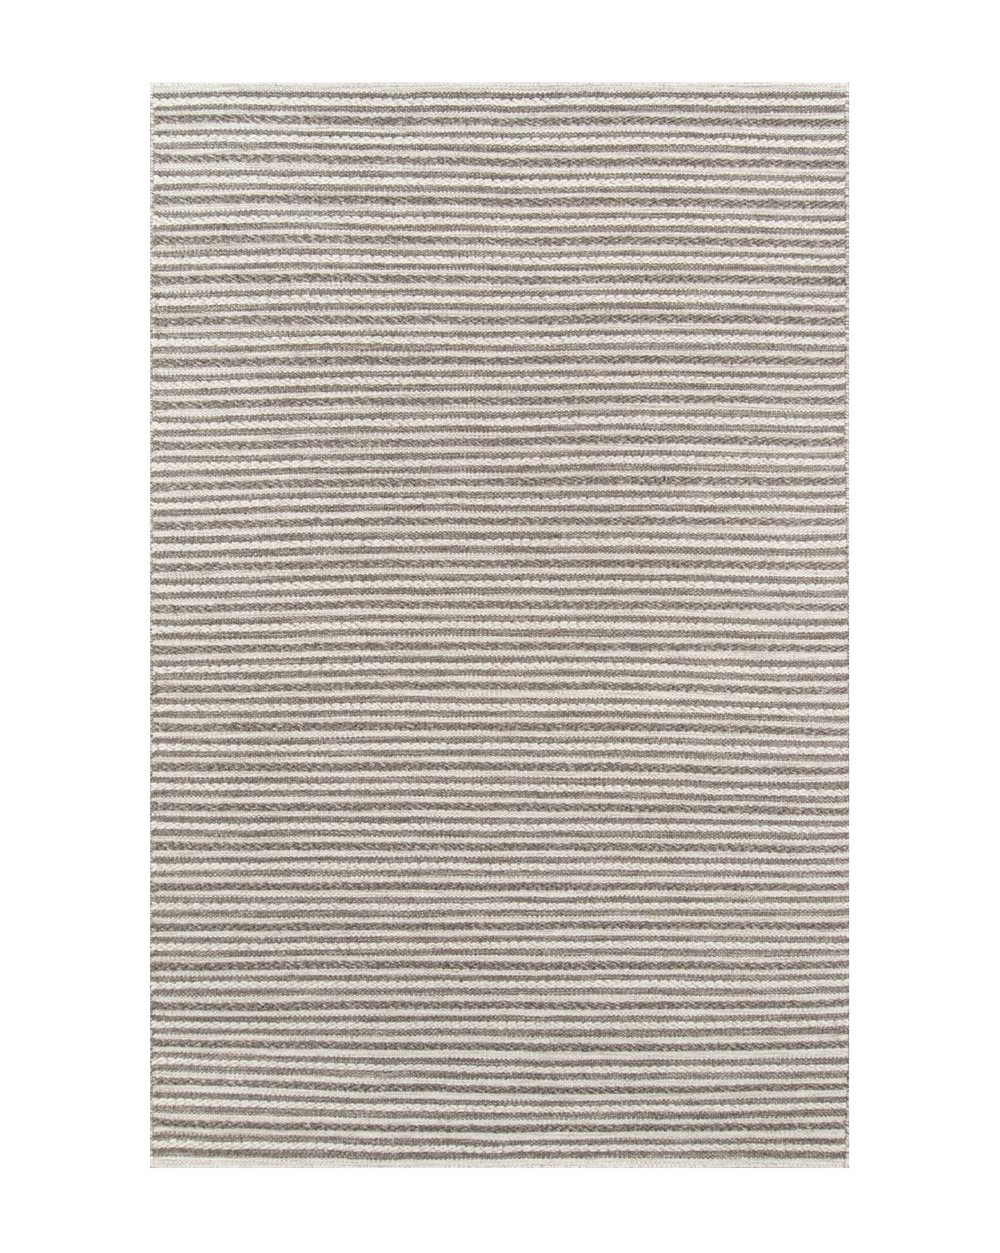 Coventry_Hand-Woven_Wool_Rug_1.jpg